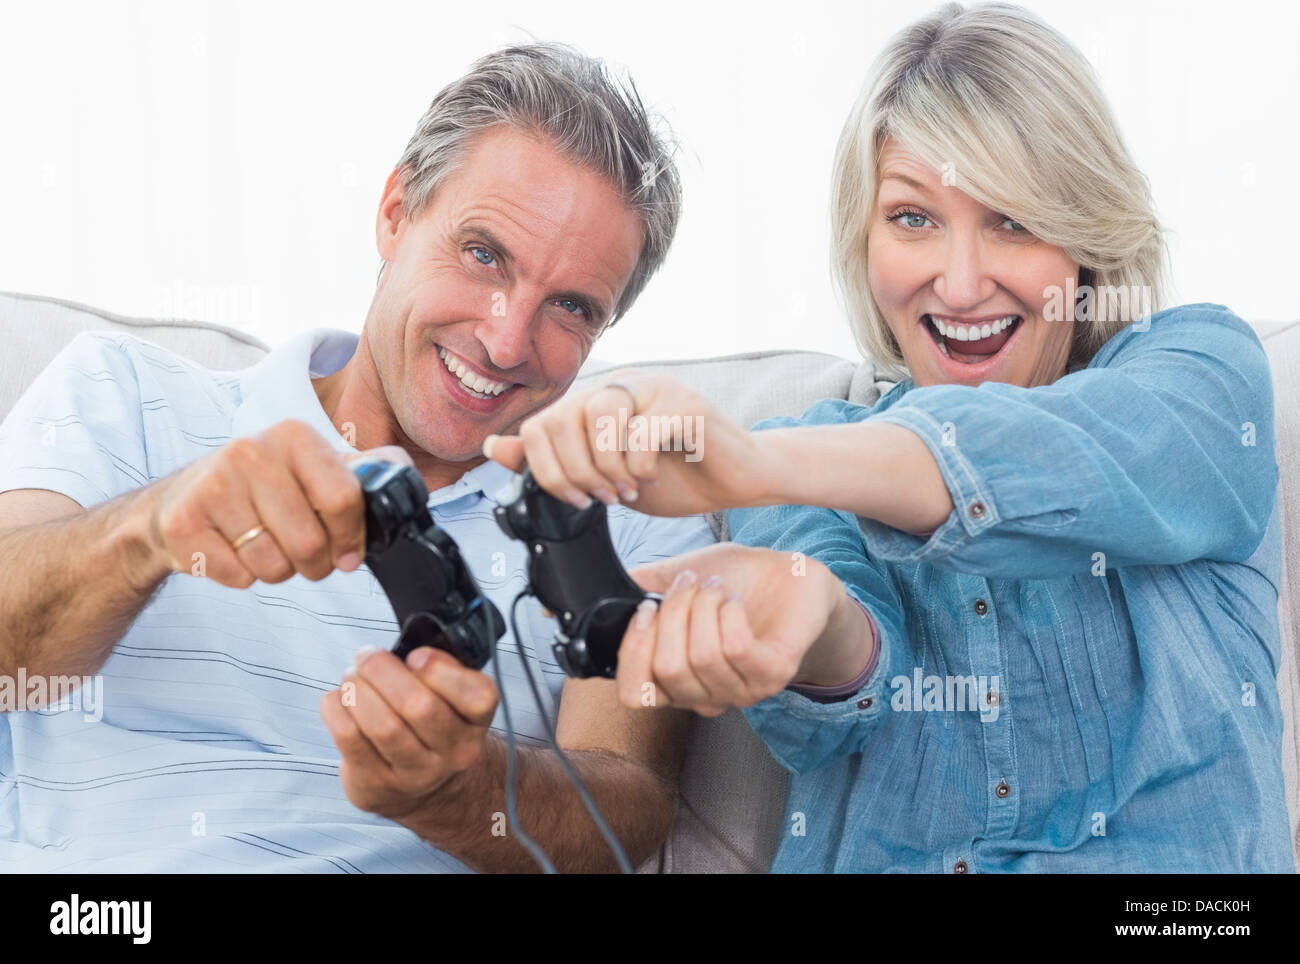 Couple playing video games on the couch - Stock Image